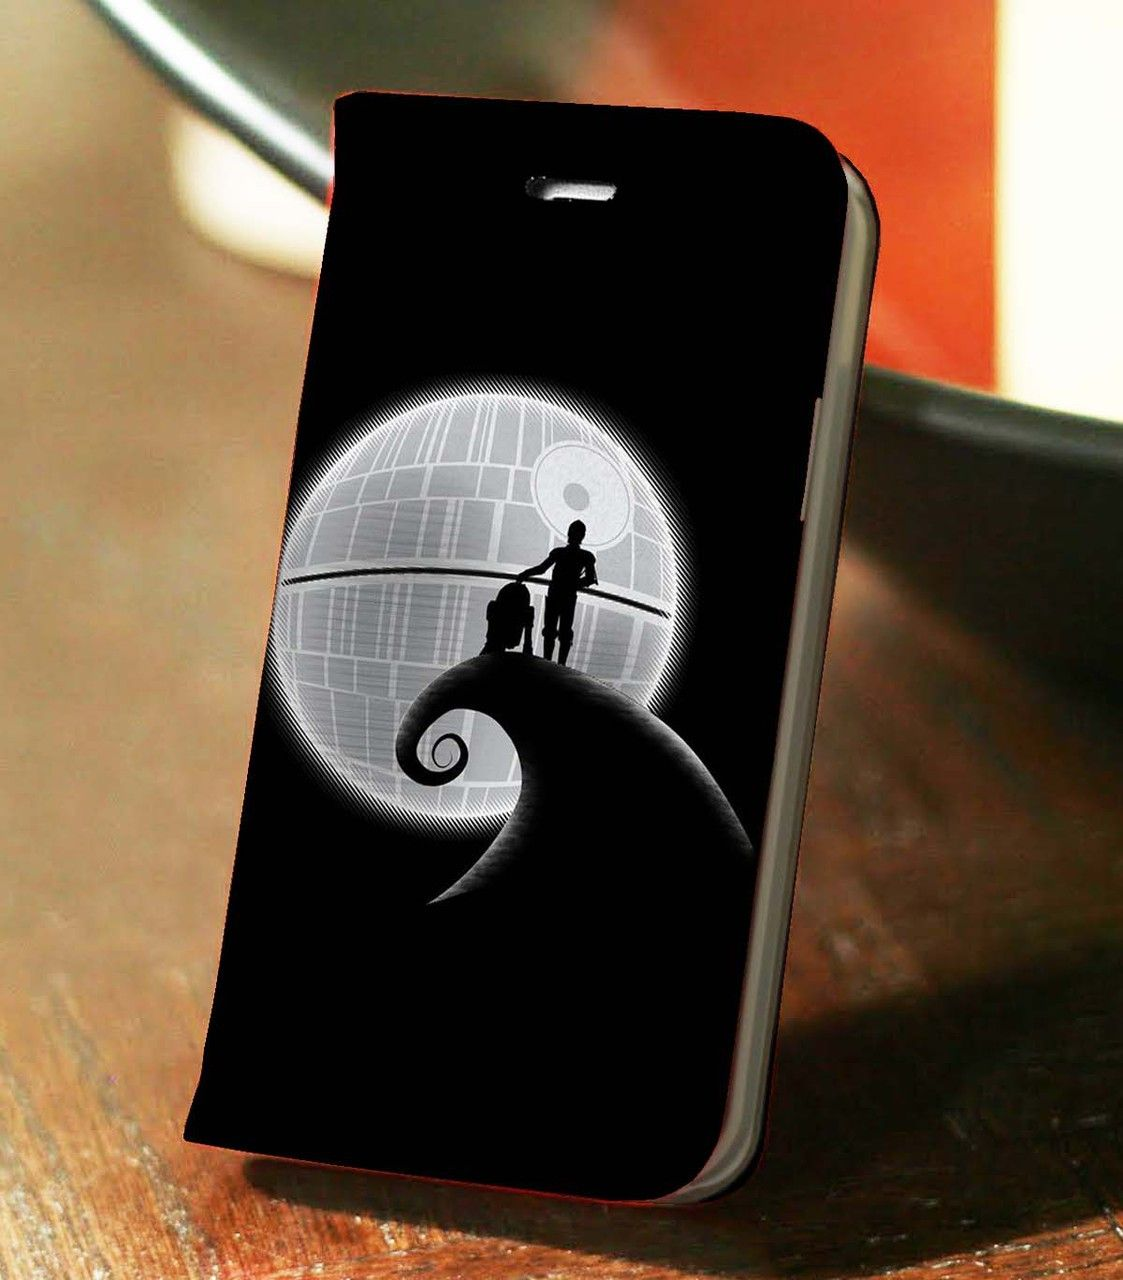 Star Wars Nightmare Before Christmas Wallet Case for iPhone 4, 4S, 5, 5S, 6, 6 Plus, 7, Samsung Galaxy S3, S4, S5, S6, S7 Case - www.lsnconecall.com